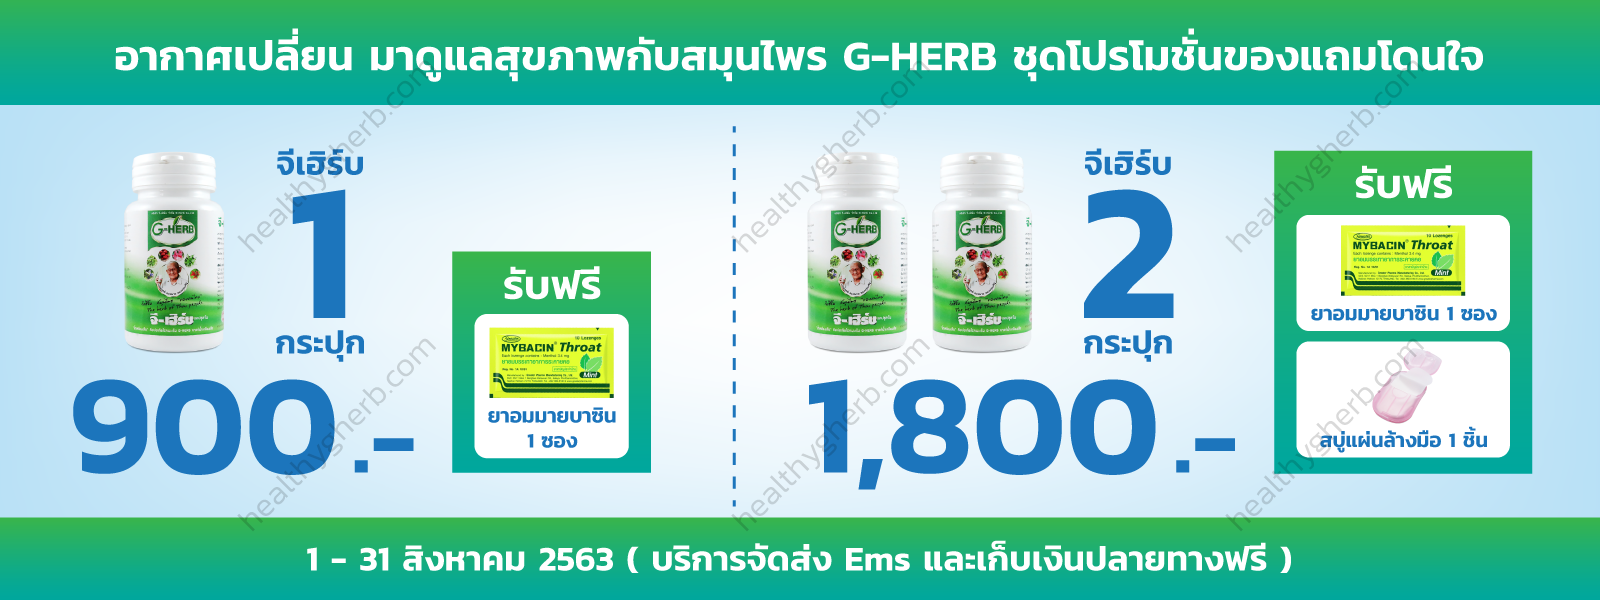 healthygherb-Promotion-Aug-2020